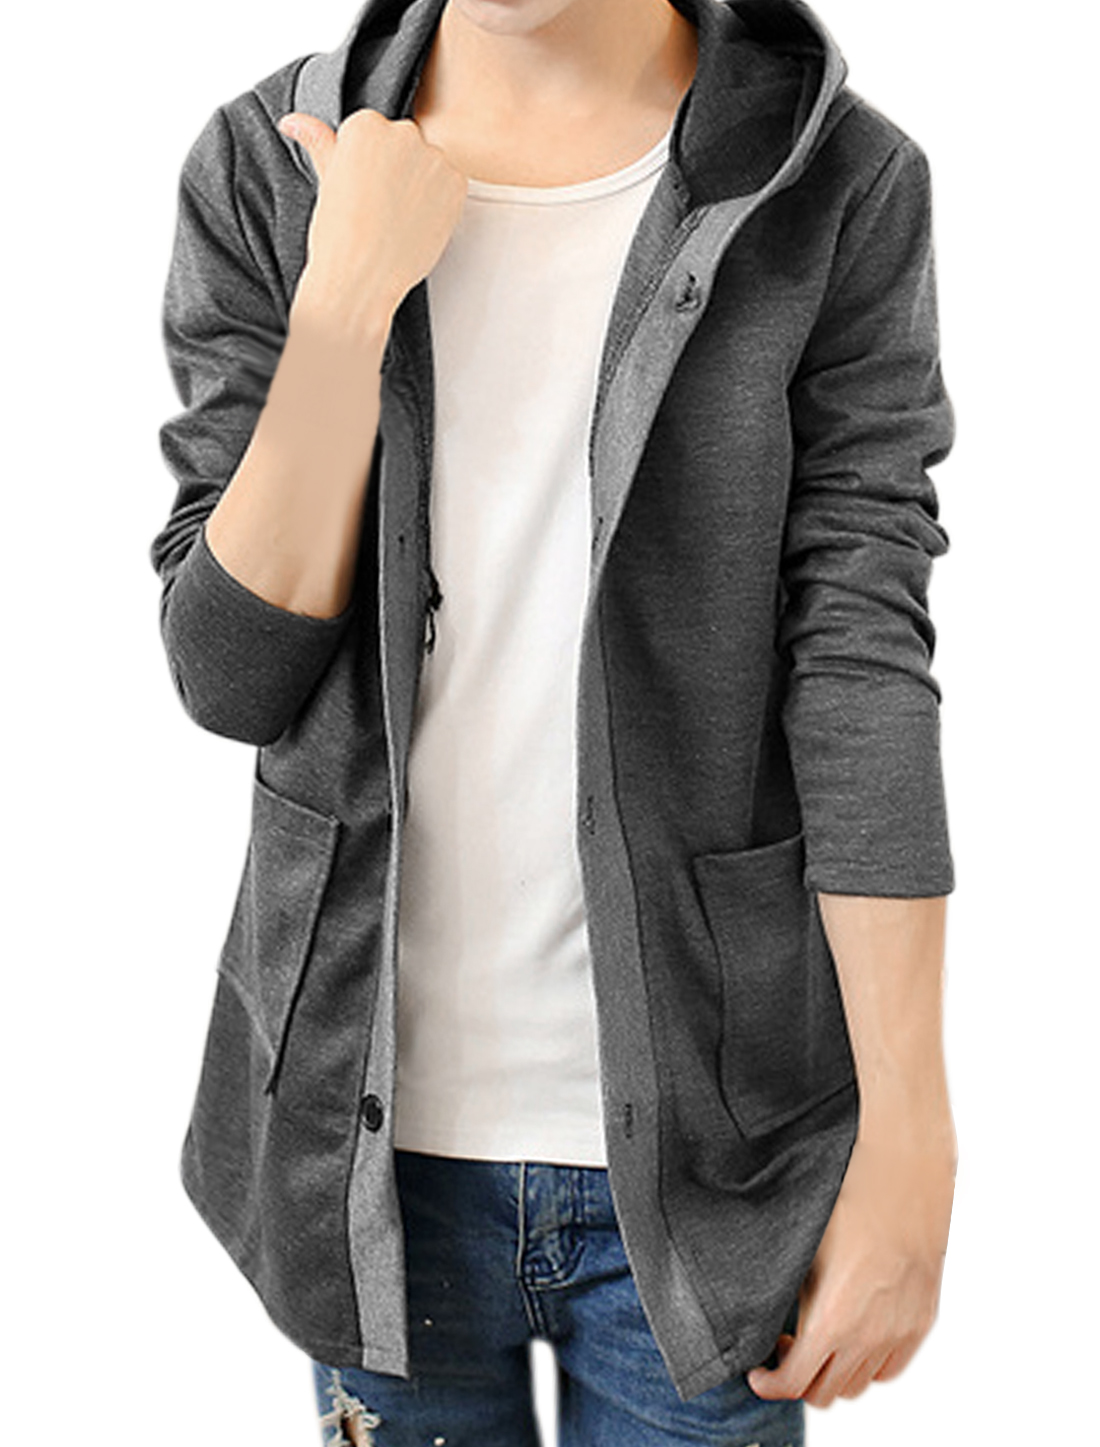 Men Long Sleeve Single Breasted Front Pockets Hooded Cardigan Dark Gray S